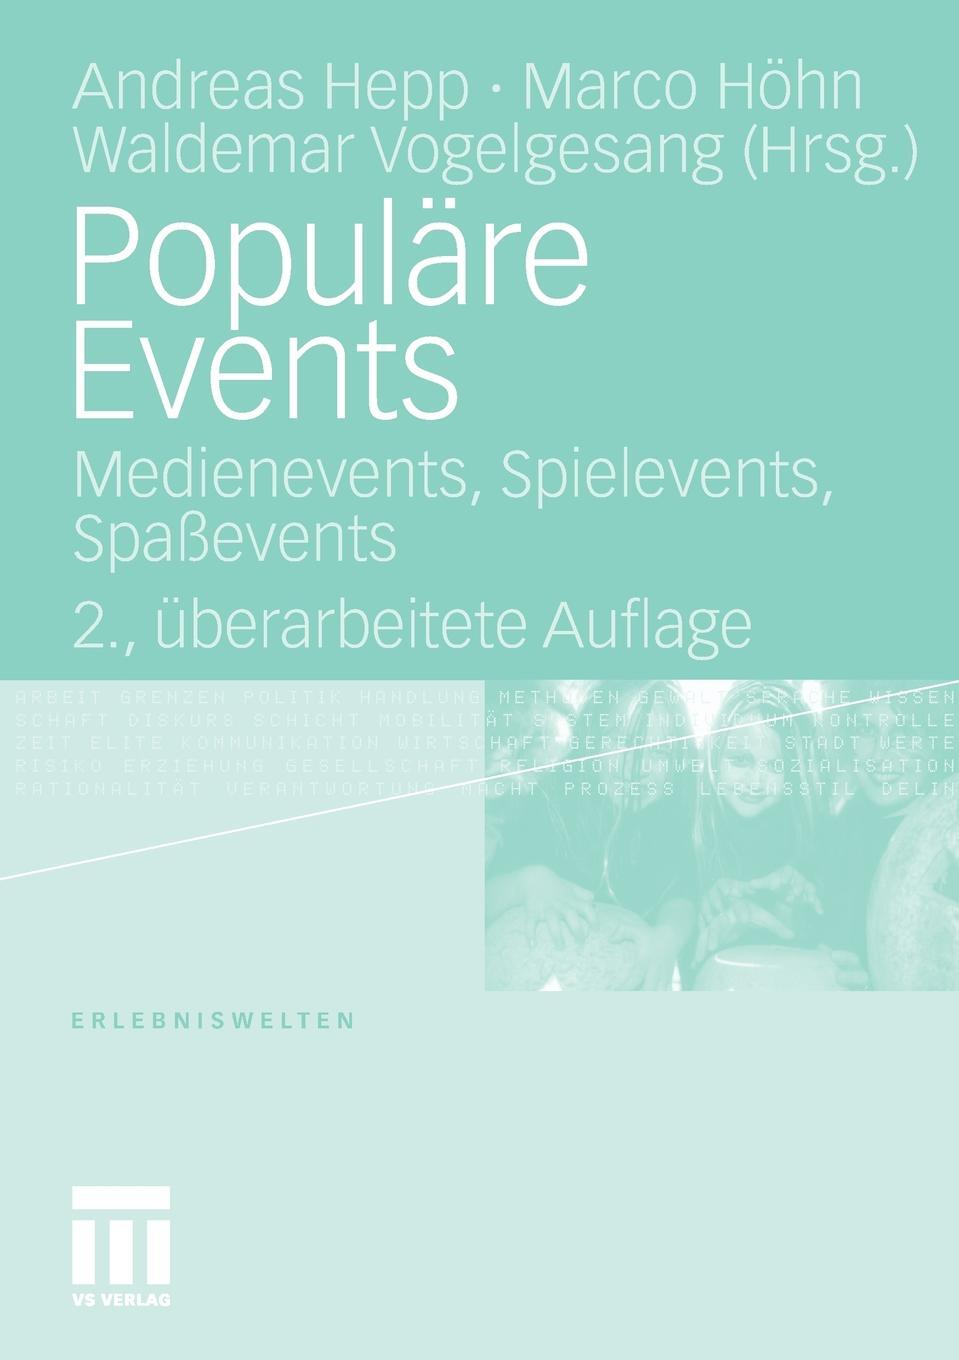 Populare Events. Medienevents, Spielevents, Spassevents